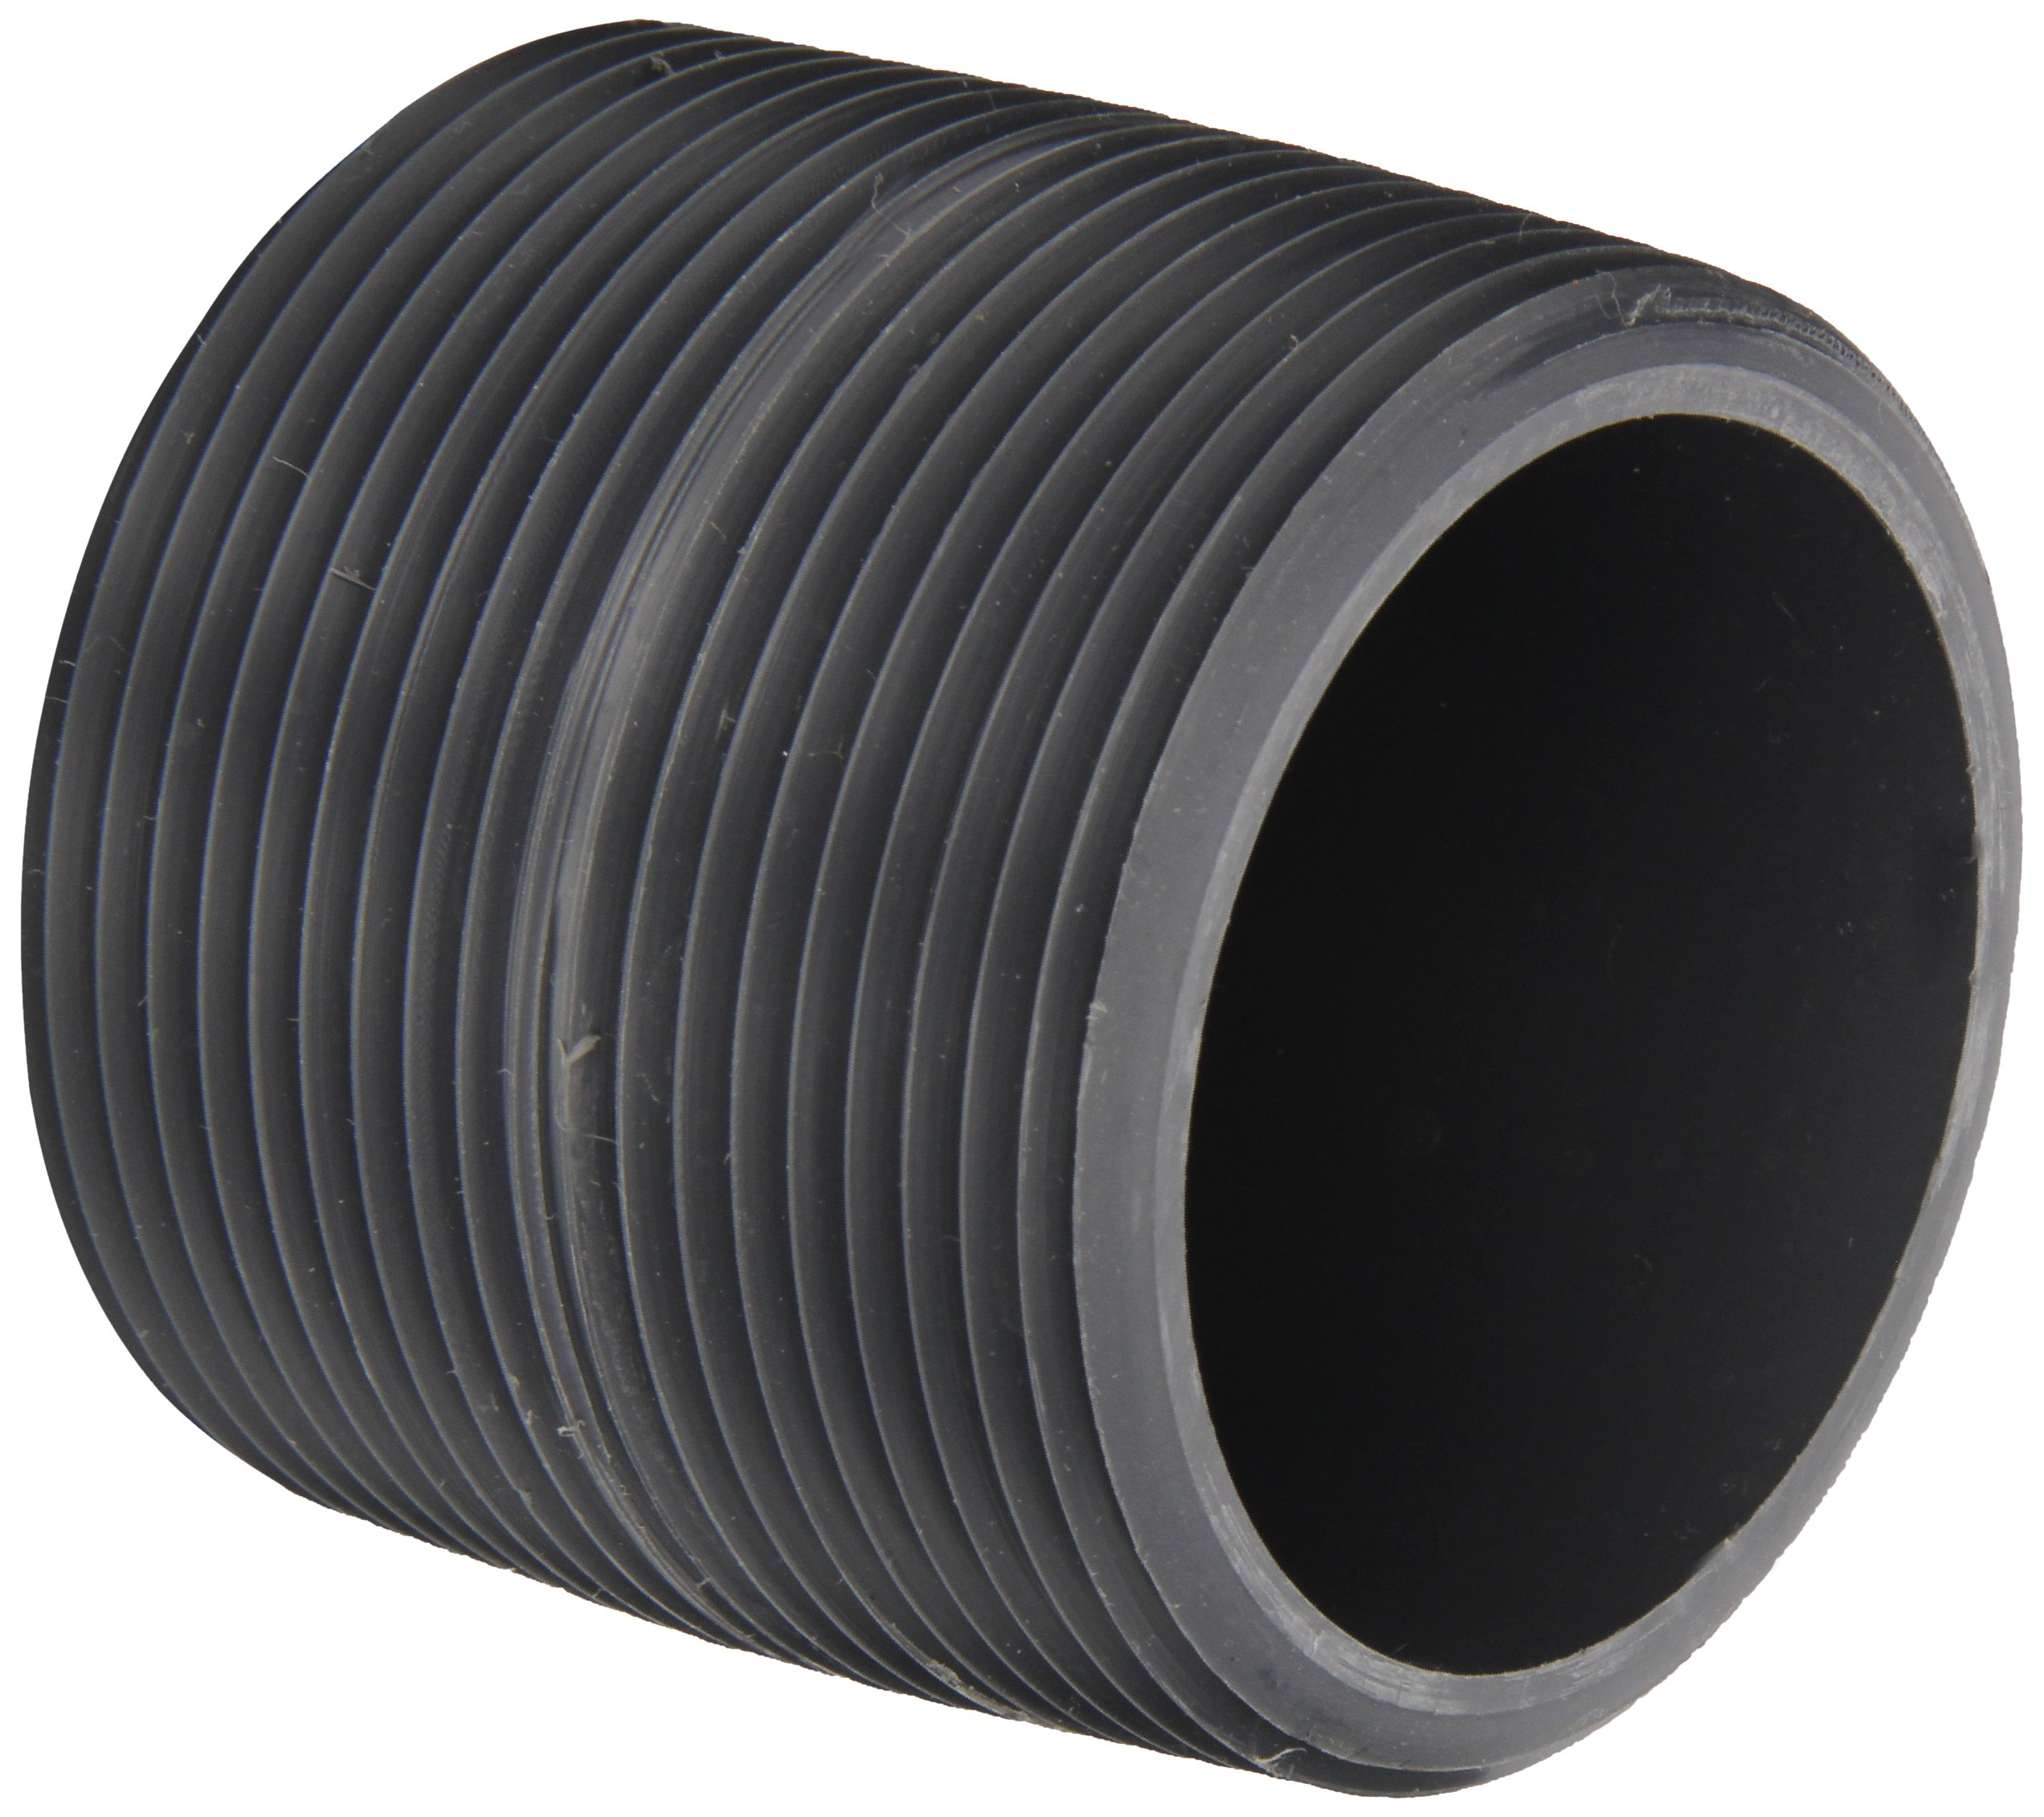 Pvc pipe fitting nipple schedule gray quot npt male